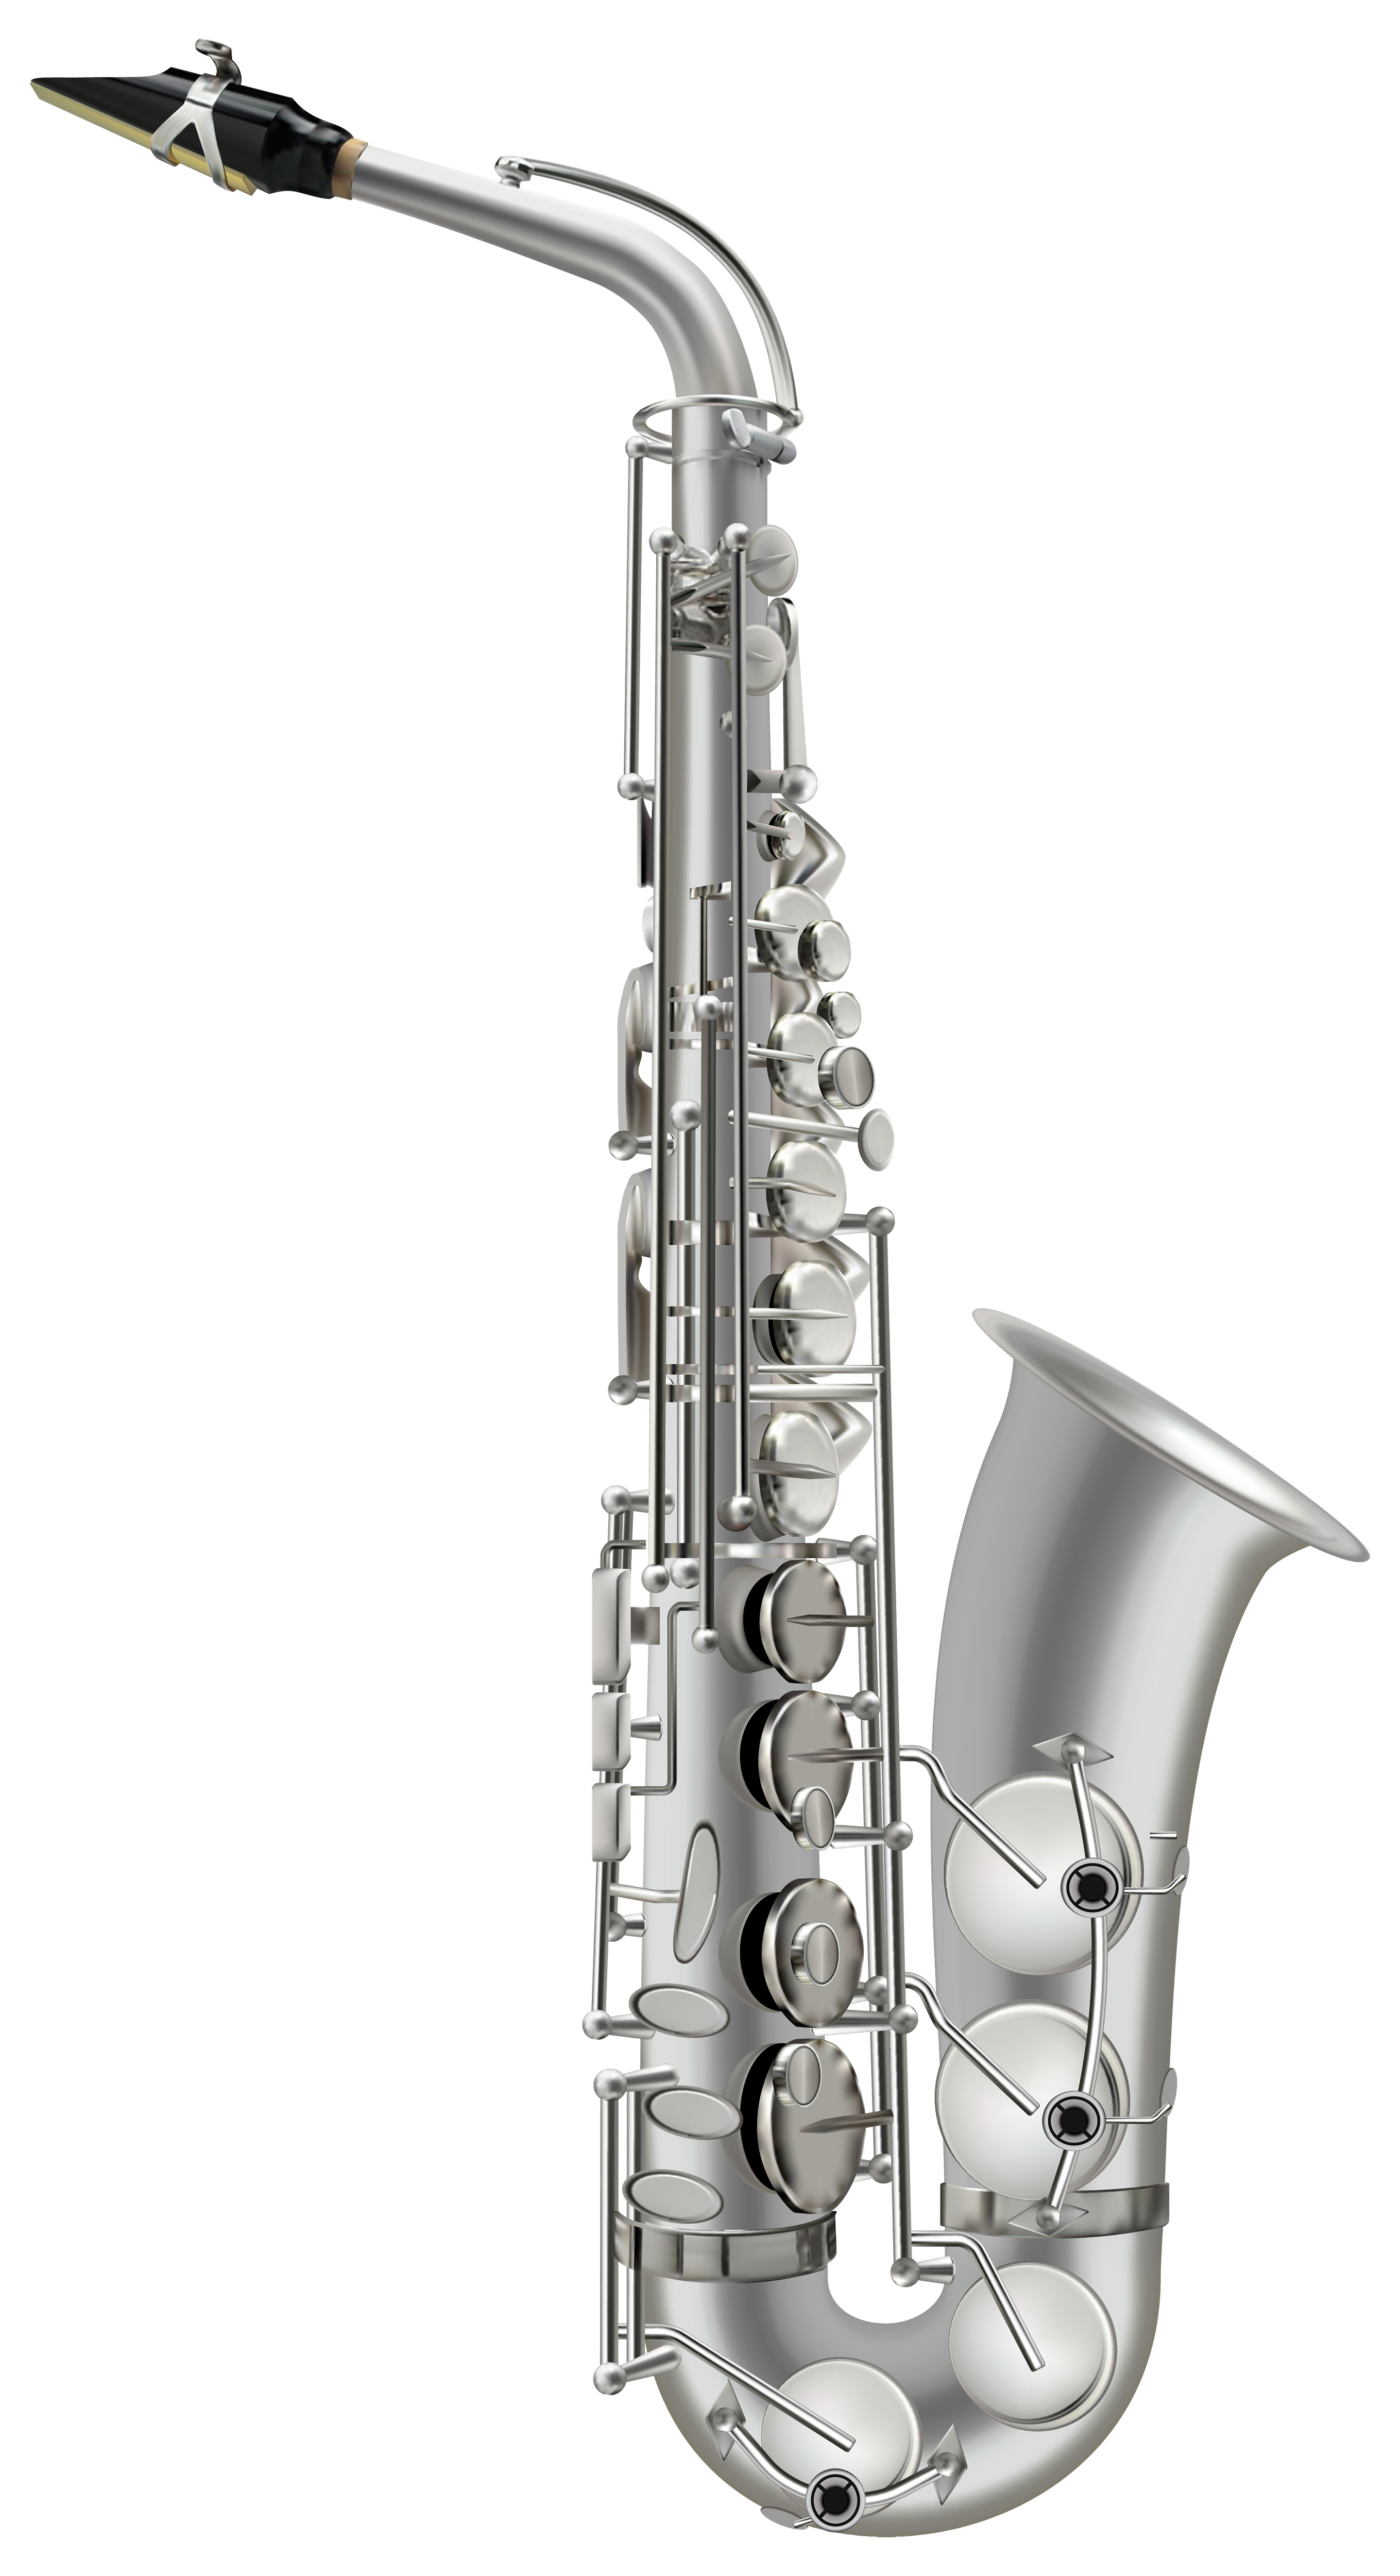 Saxophone clipart music instrument #10